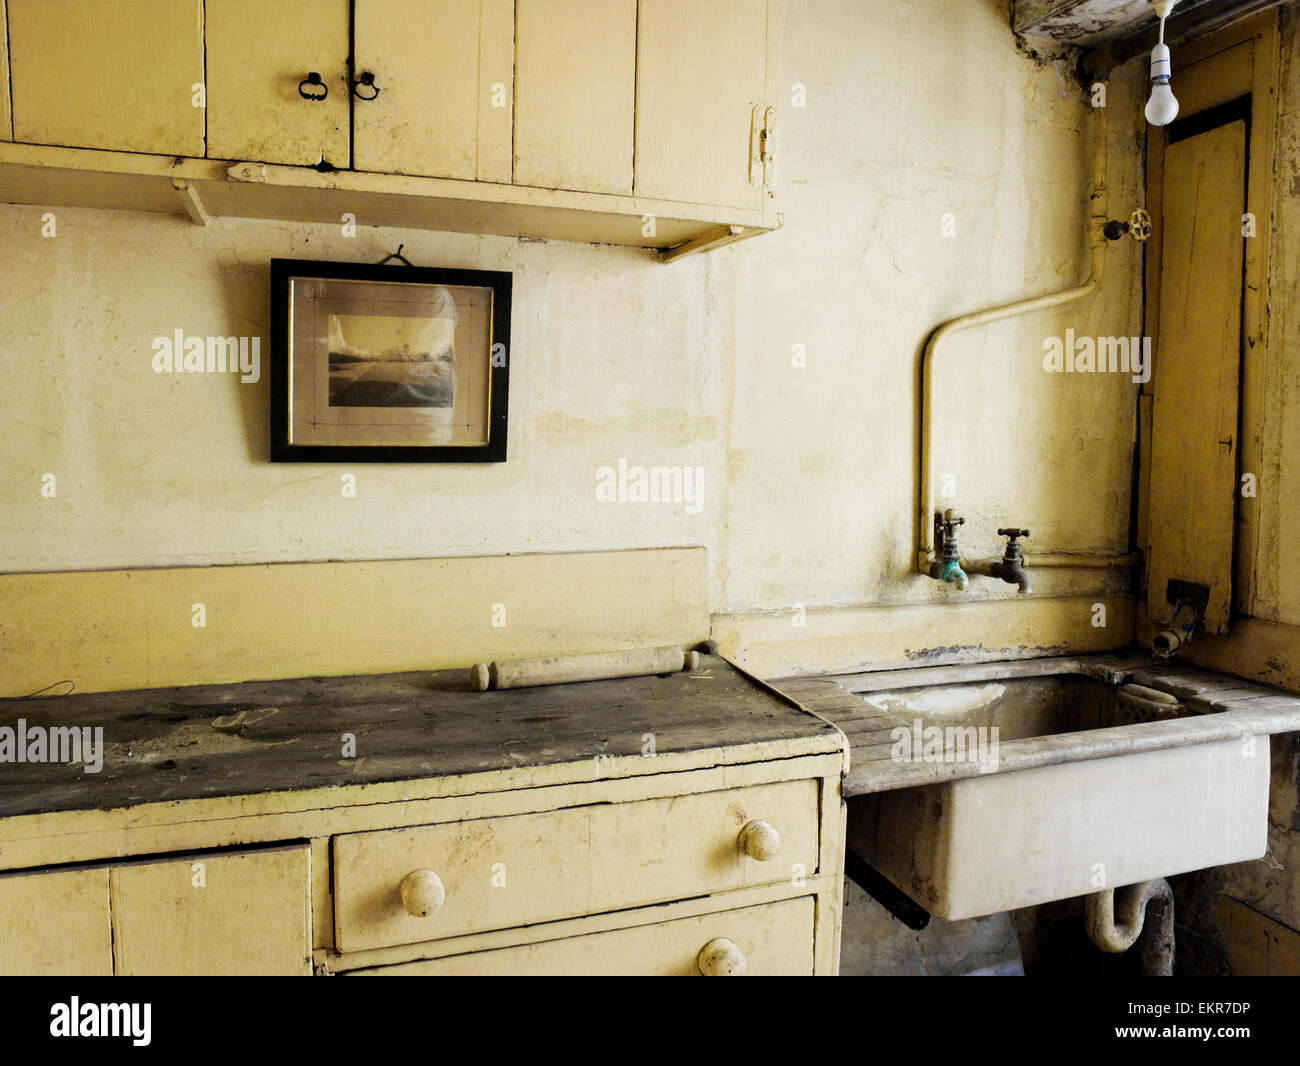 An old fashioned kitchen sink and cupboards stock photo - Old fashioned sinks kitchen ...